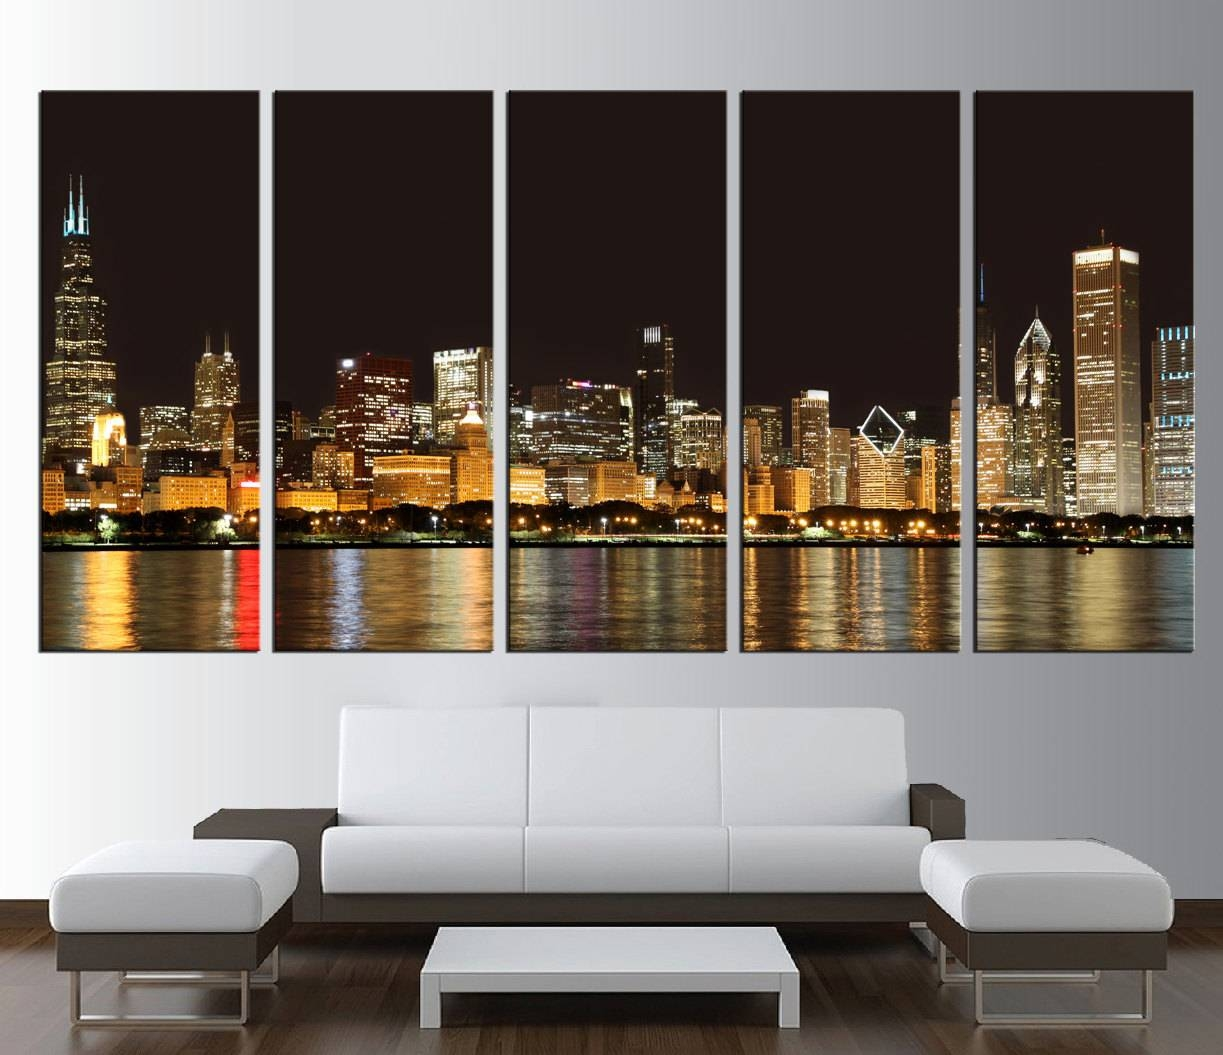 Wall Art: Breathtaking Images Of Large Horizontal Wall Art Inside Most Recently Released Horizontal Canvas Wall Art (View 19 of 20)